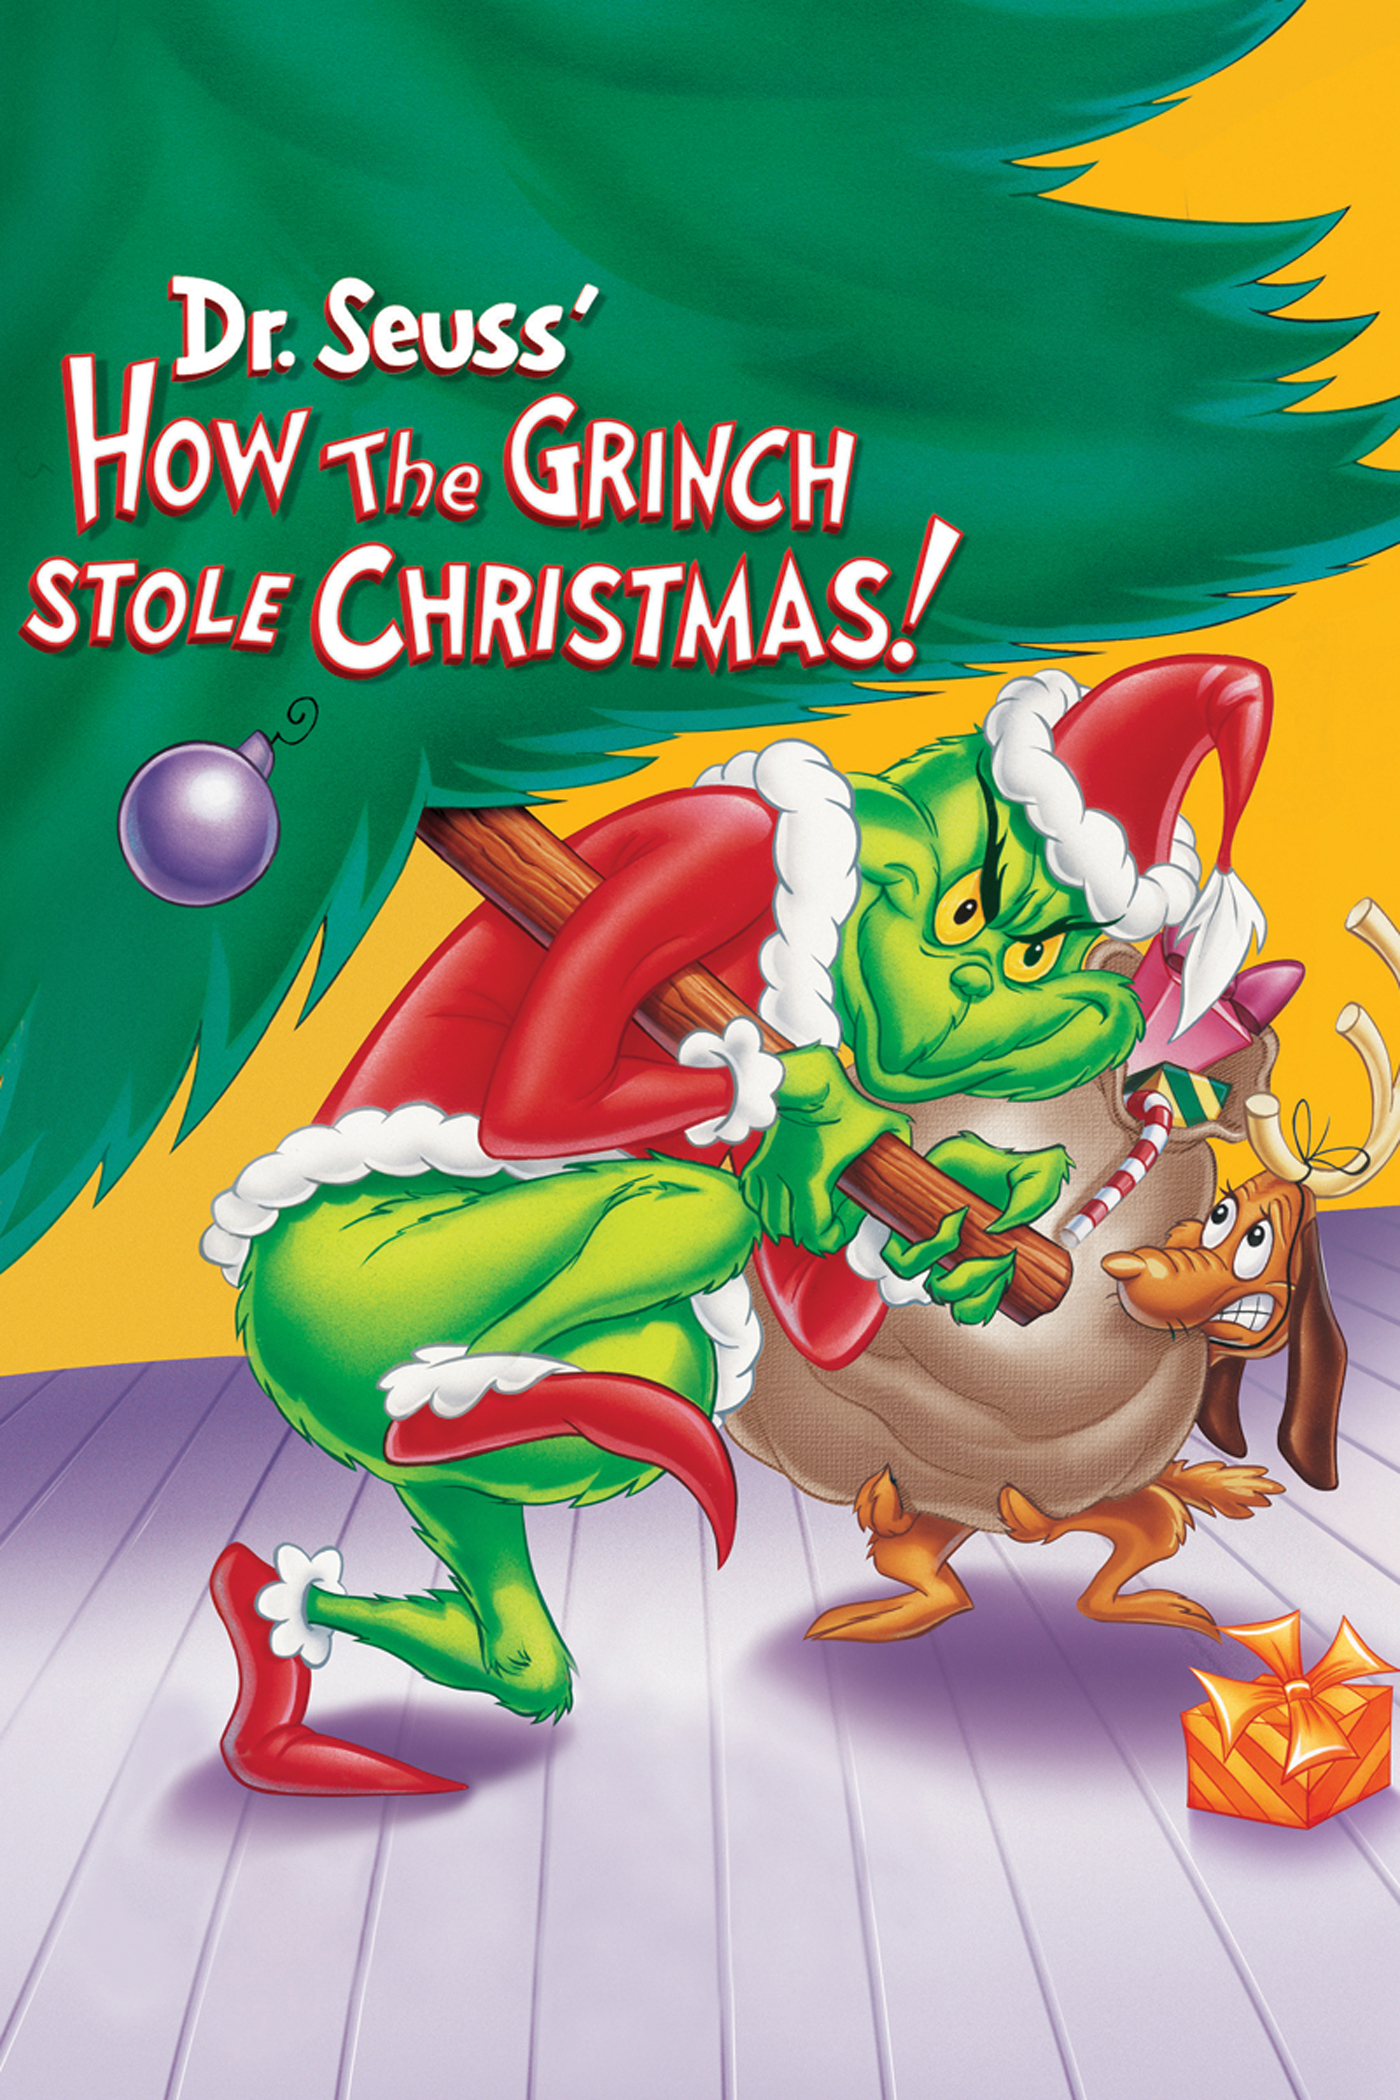 How The Grinch Stole Christmas Full Movie.How The Grinch Stole Christmas Buy Rent Or Watch On